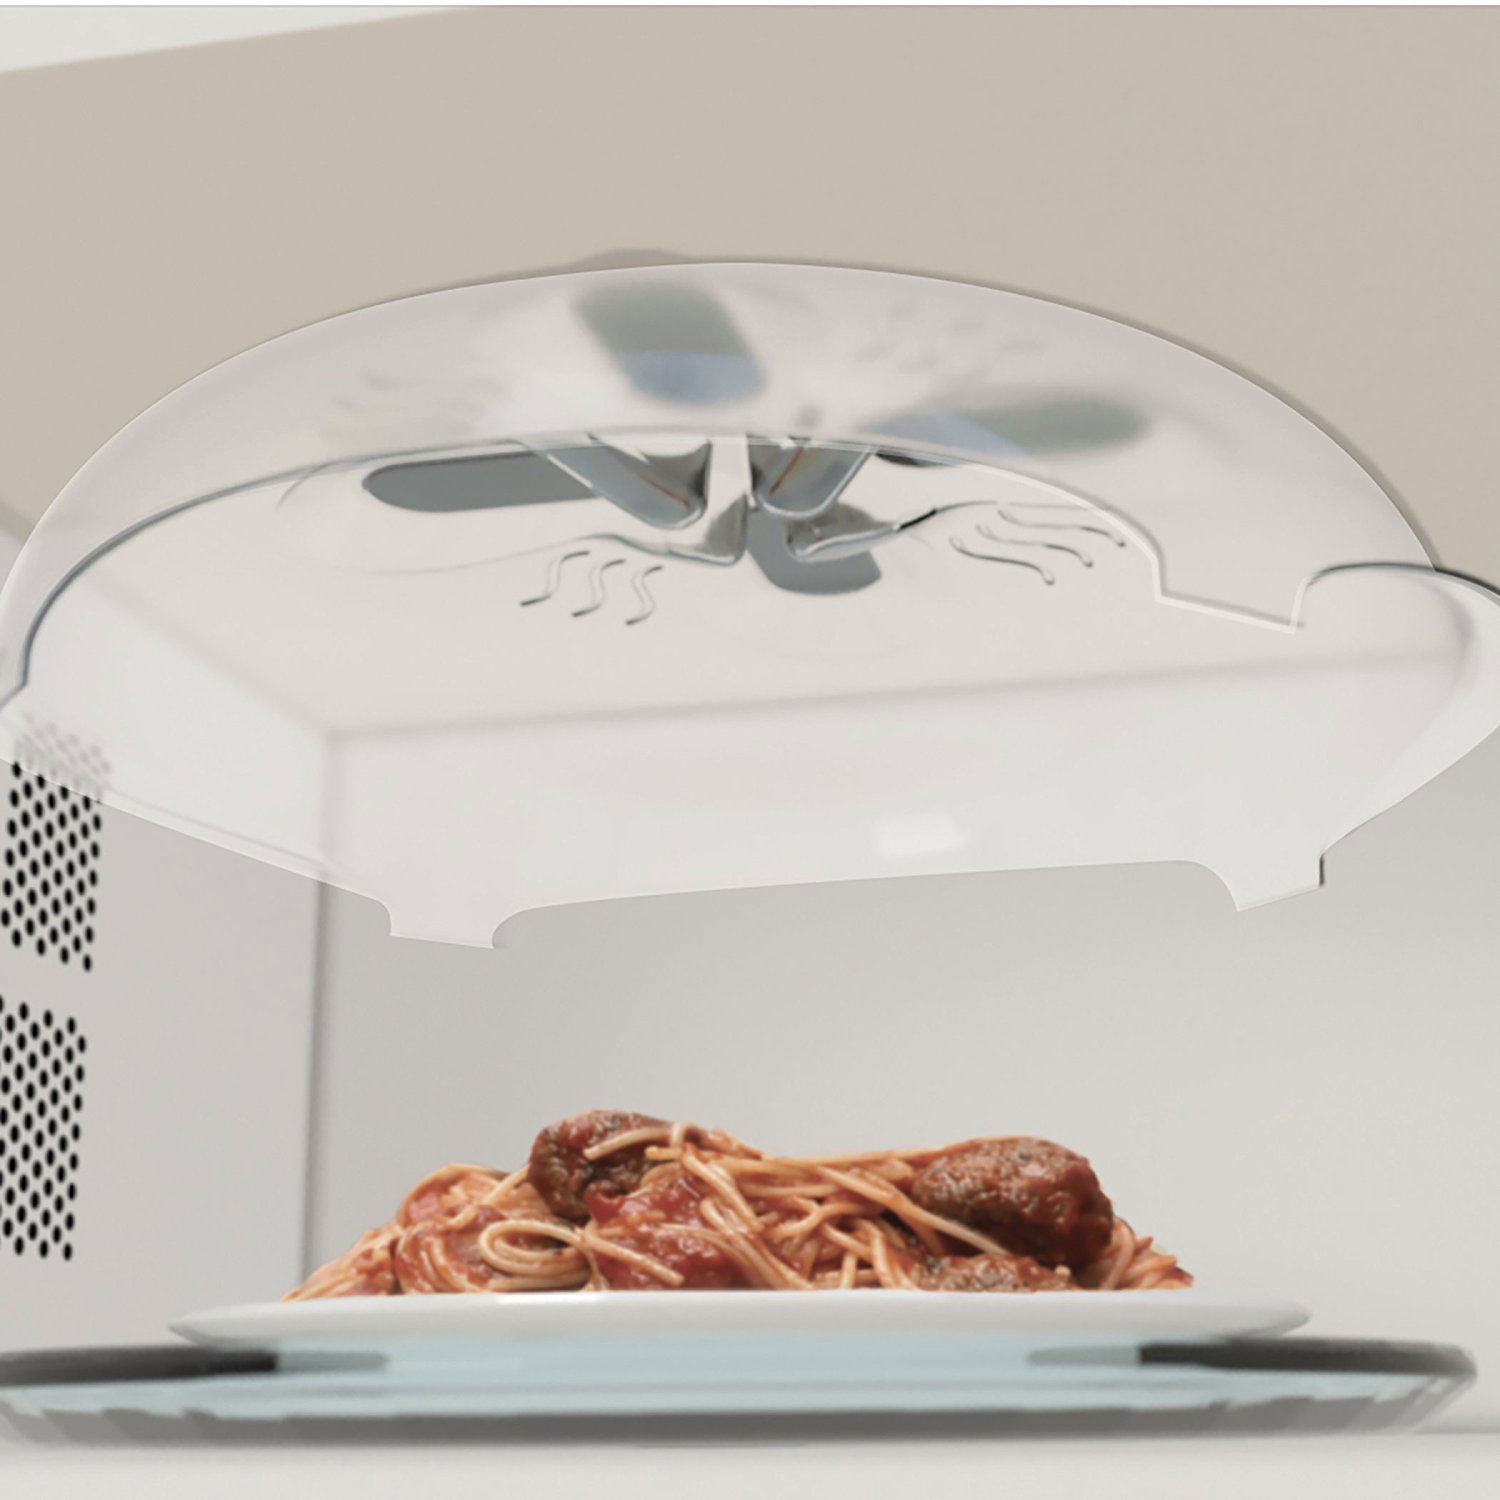 Splatter Tool Affixed Top of Microwave